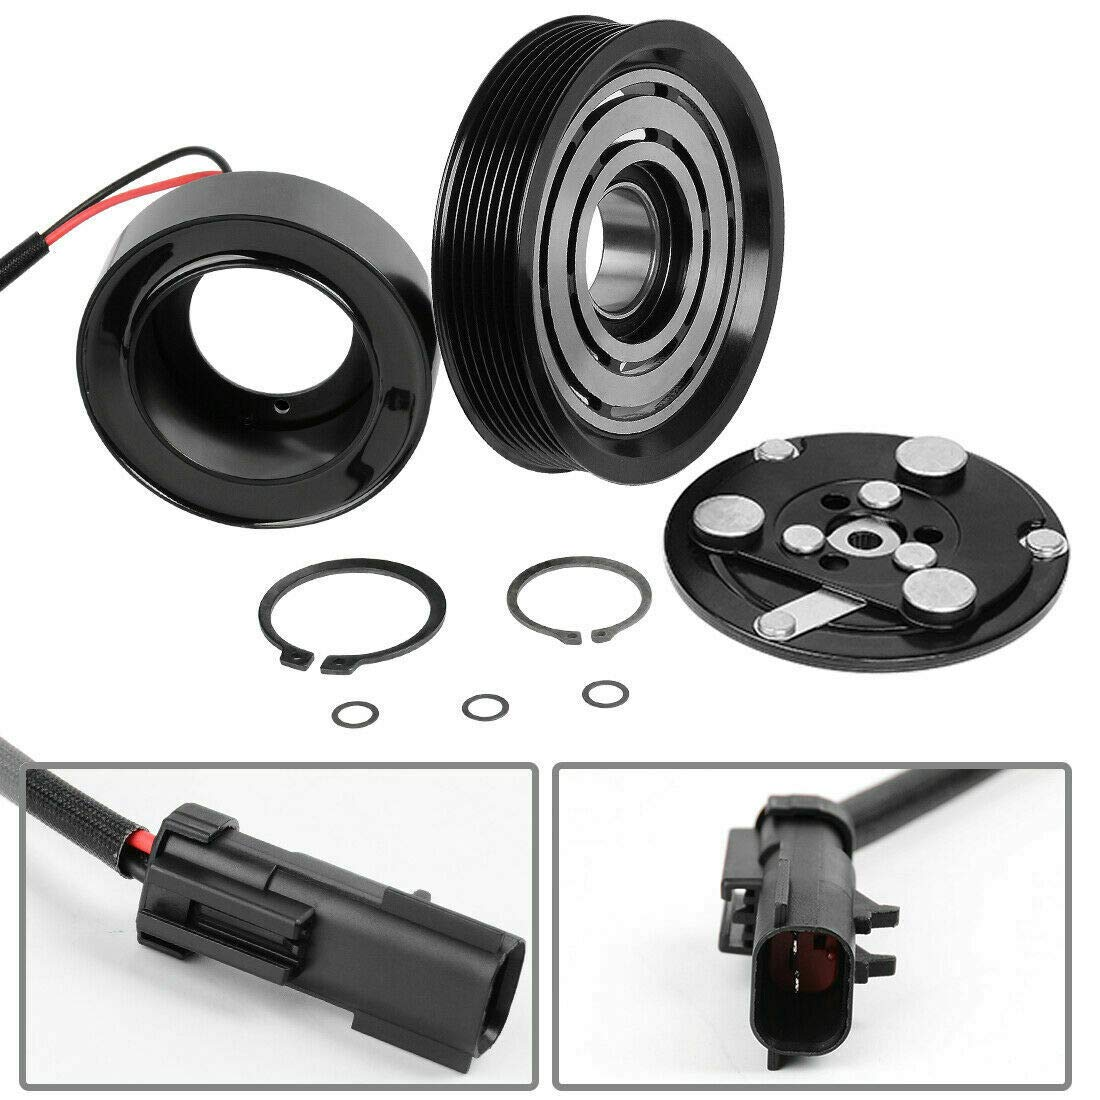 2003 Dodge Ram 1500 8 CYL 4.7L 7 Groove SD7H15 PULLEY, COIL, BEARING, PLATE AC COMPRESSOR CLUTCH KIT FITS